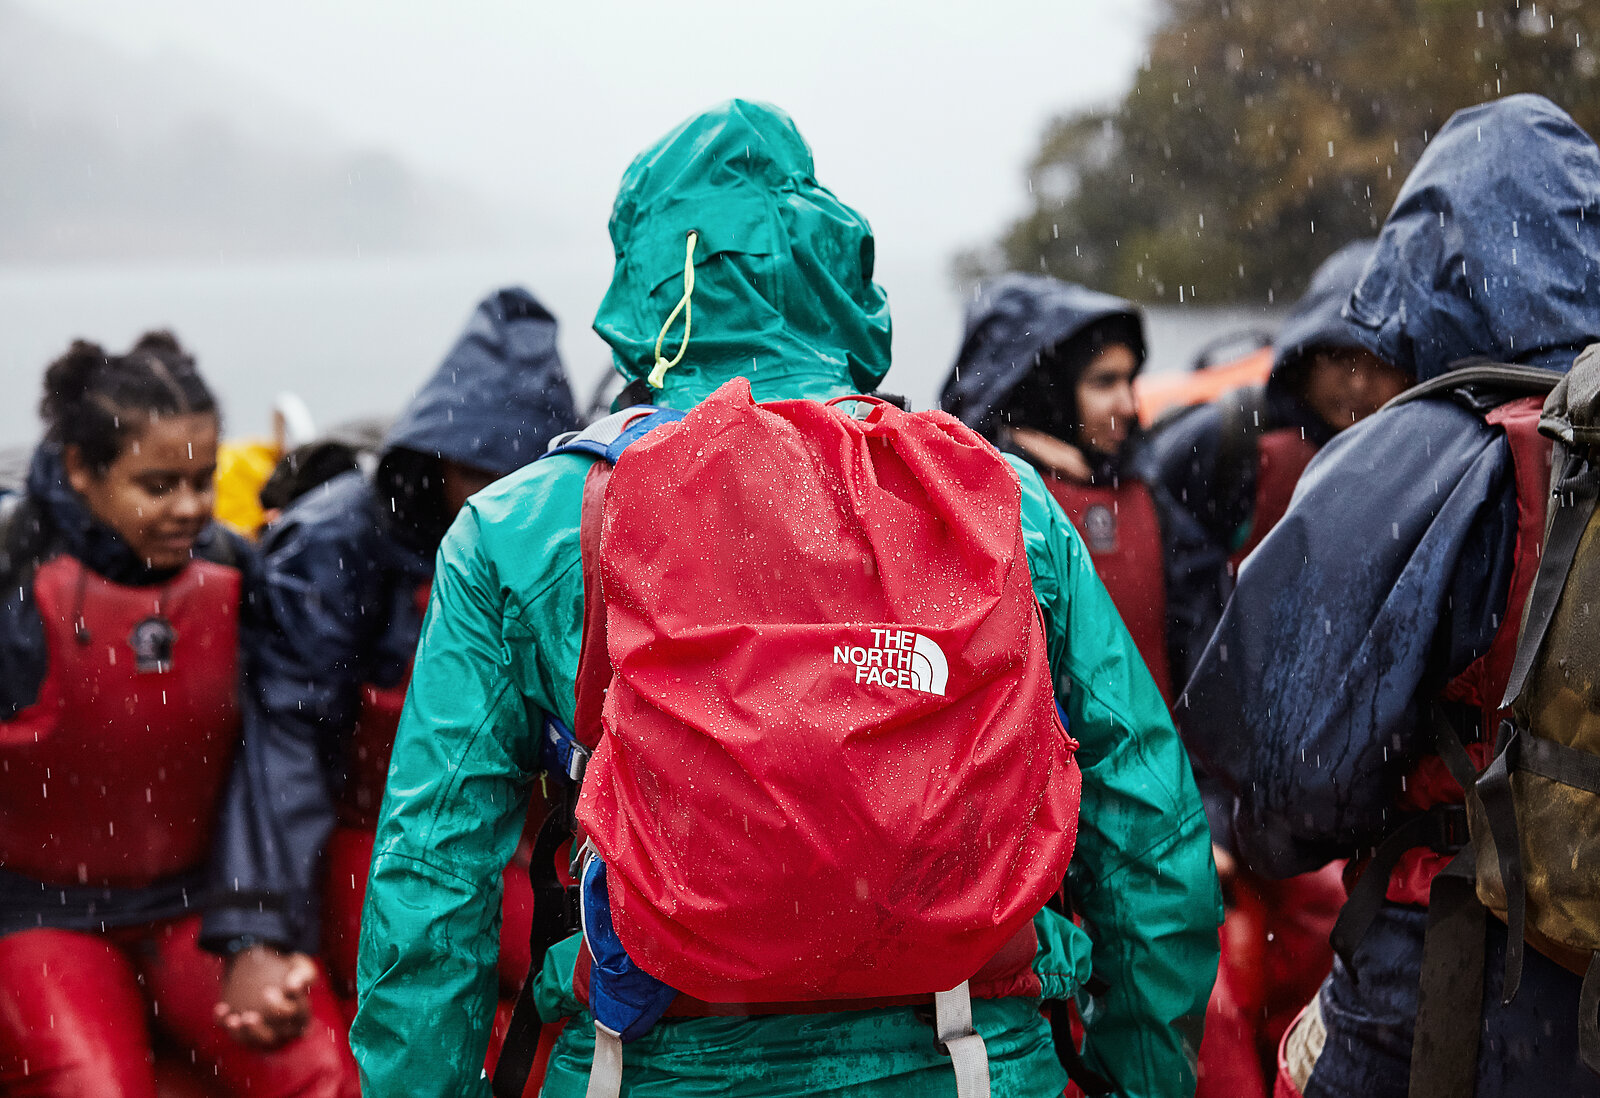 Adventure, Lake District, Lifejacket, The North Face, The Outdoors, The Outward Bound Trust, nature, rain, waterproof